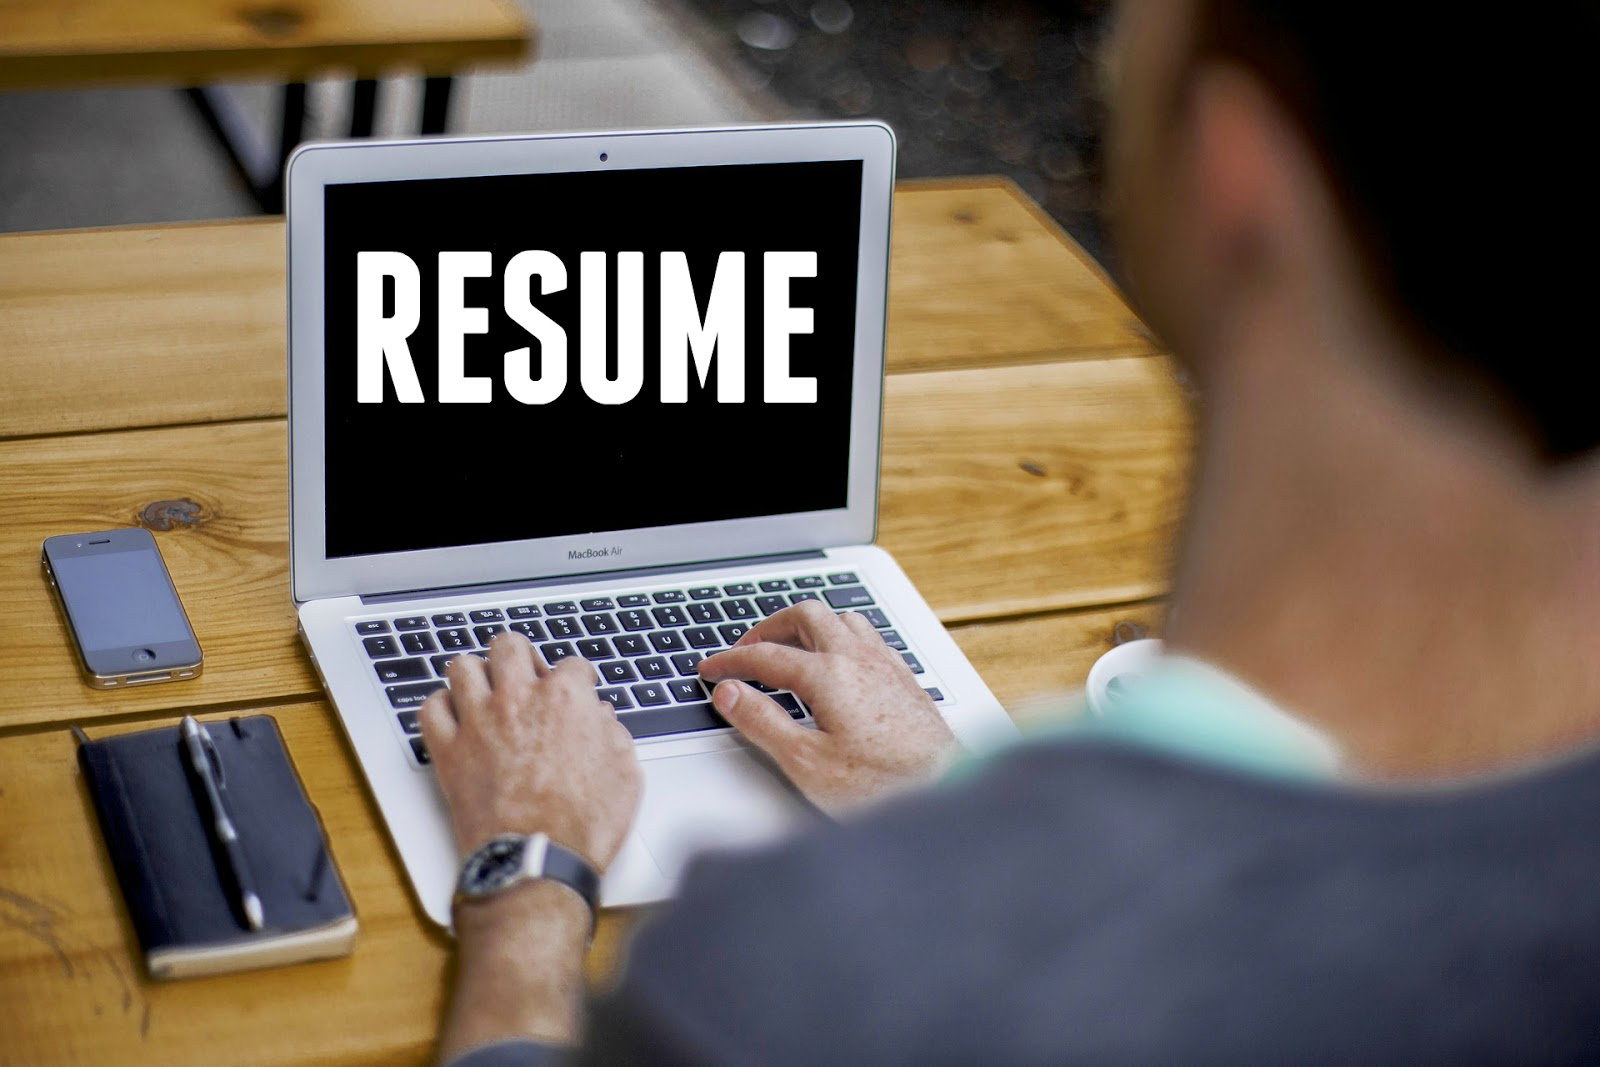 how long should my resume be smart cover letter templates how long should my resume be - How Long Should My Resume Be